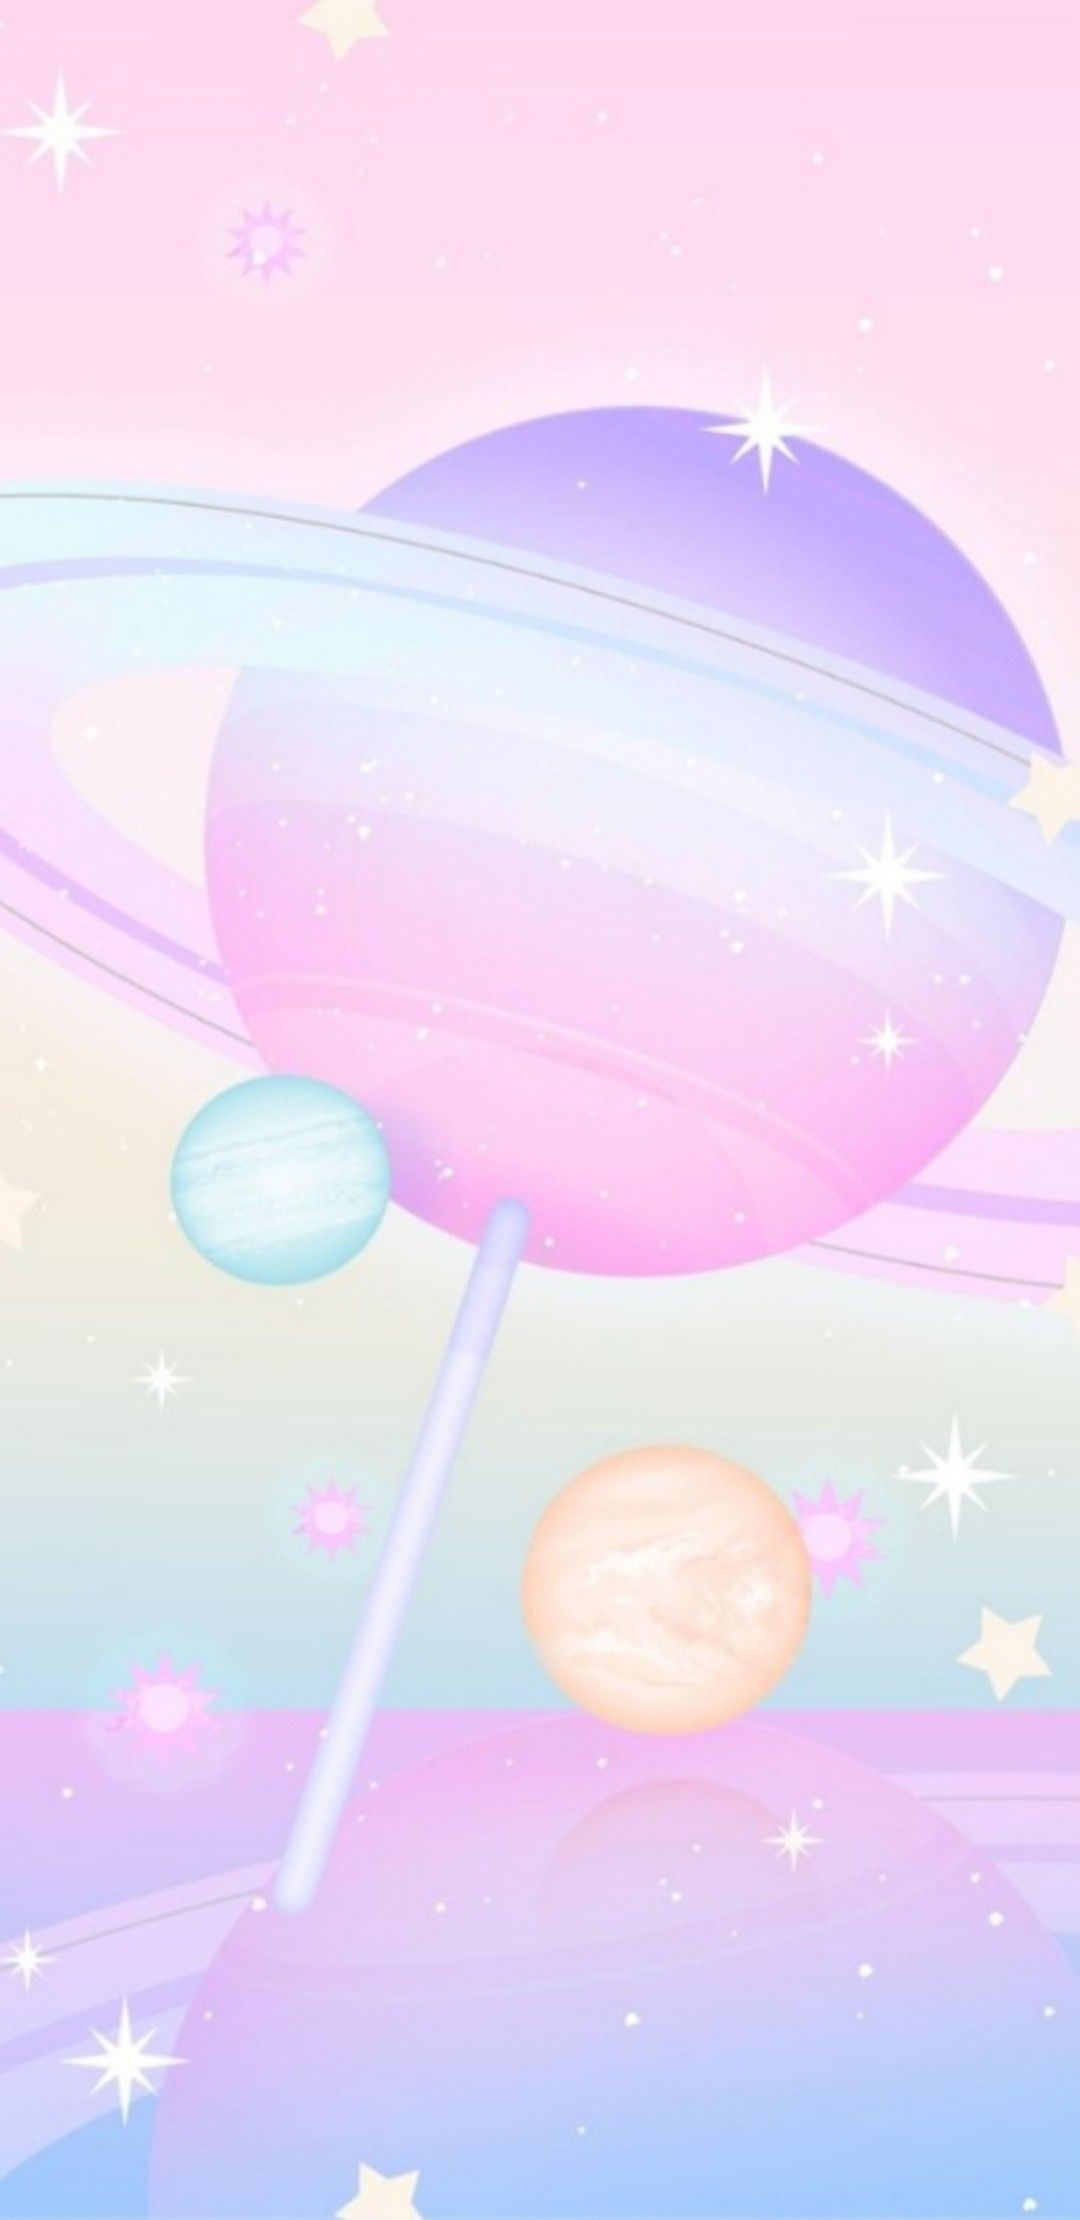 Kawaii Pastel Space Aesthetic Wallpaper Tons of awesome strawberry aesthetic wallpapers to download for free. kawaii pastel space aesthetic wallpaper